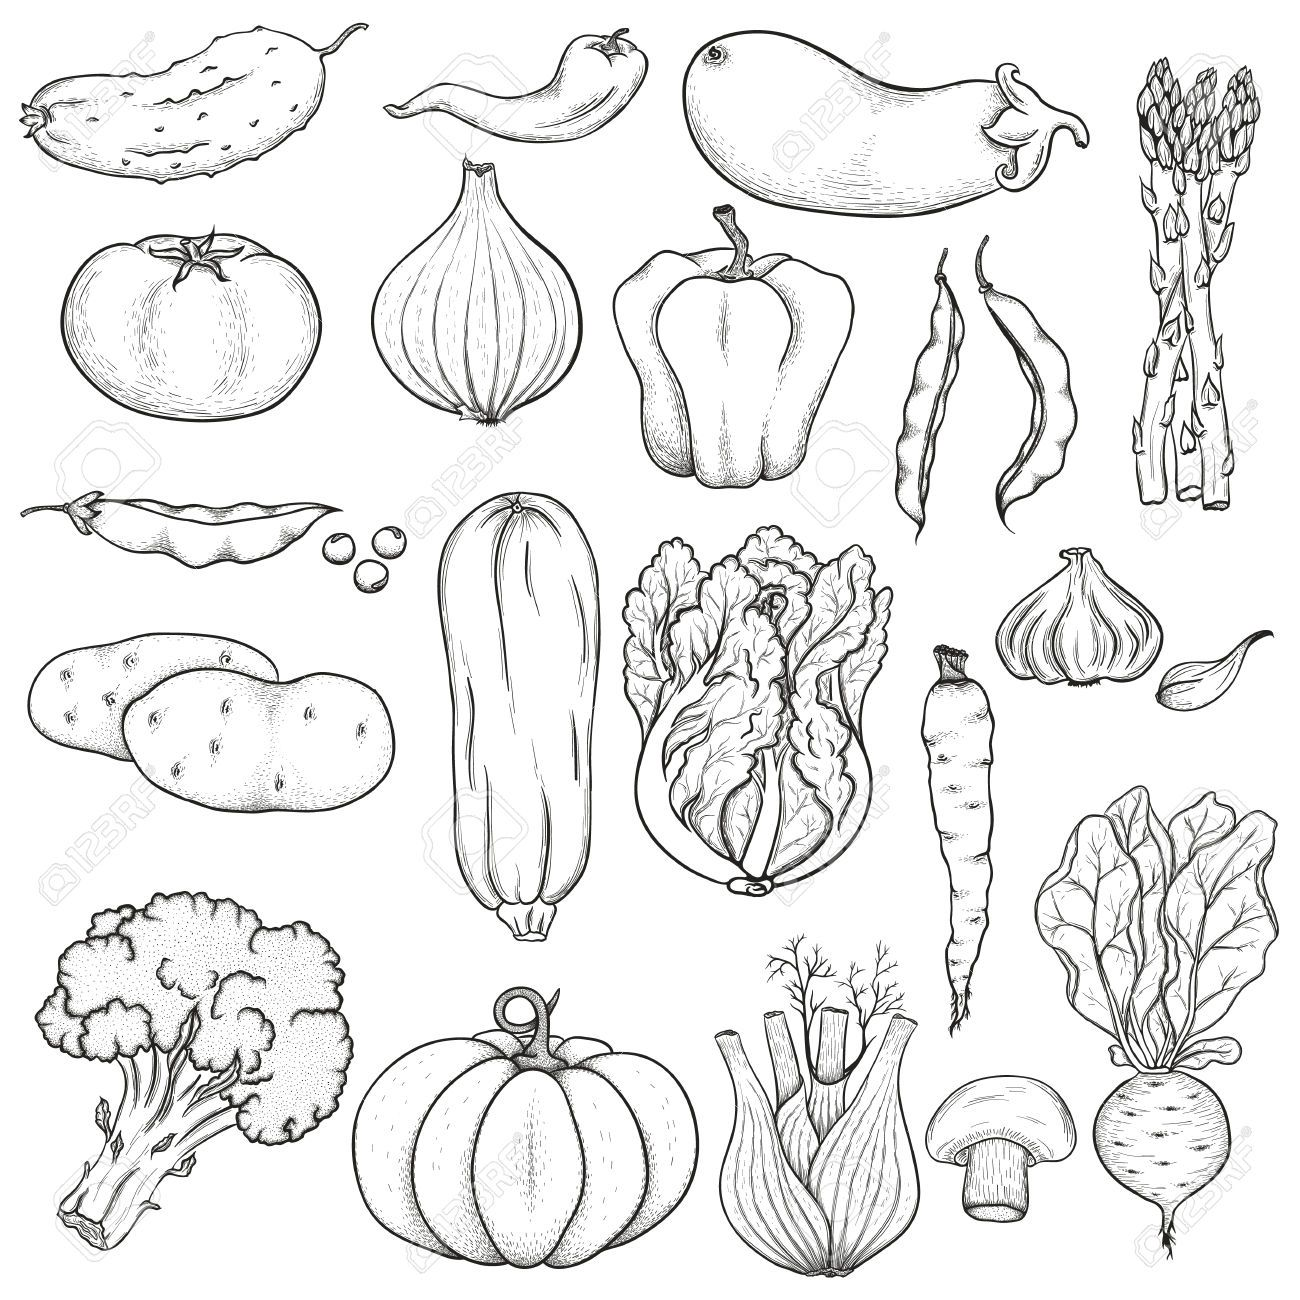 clipart vegetables black and white.